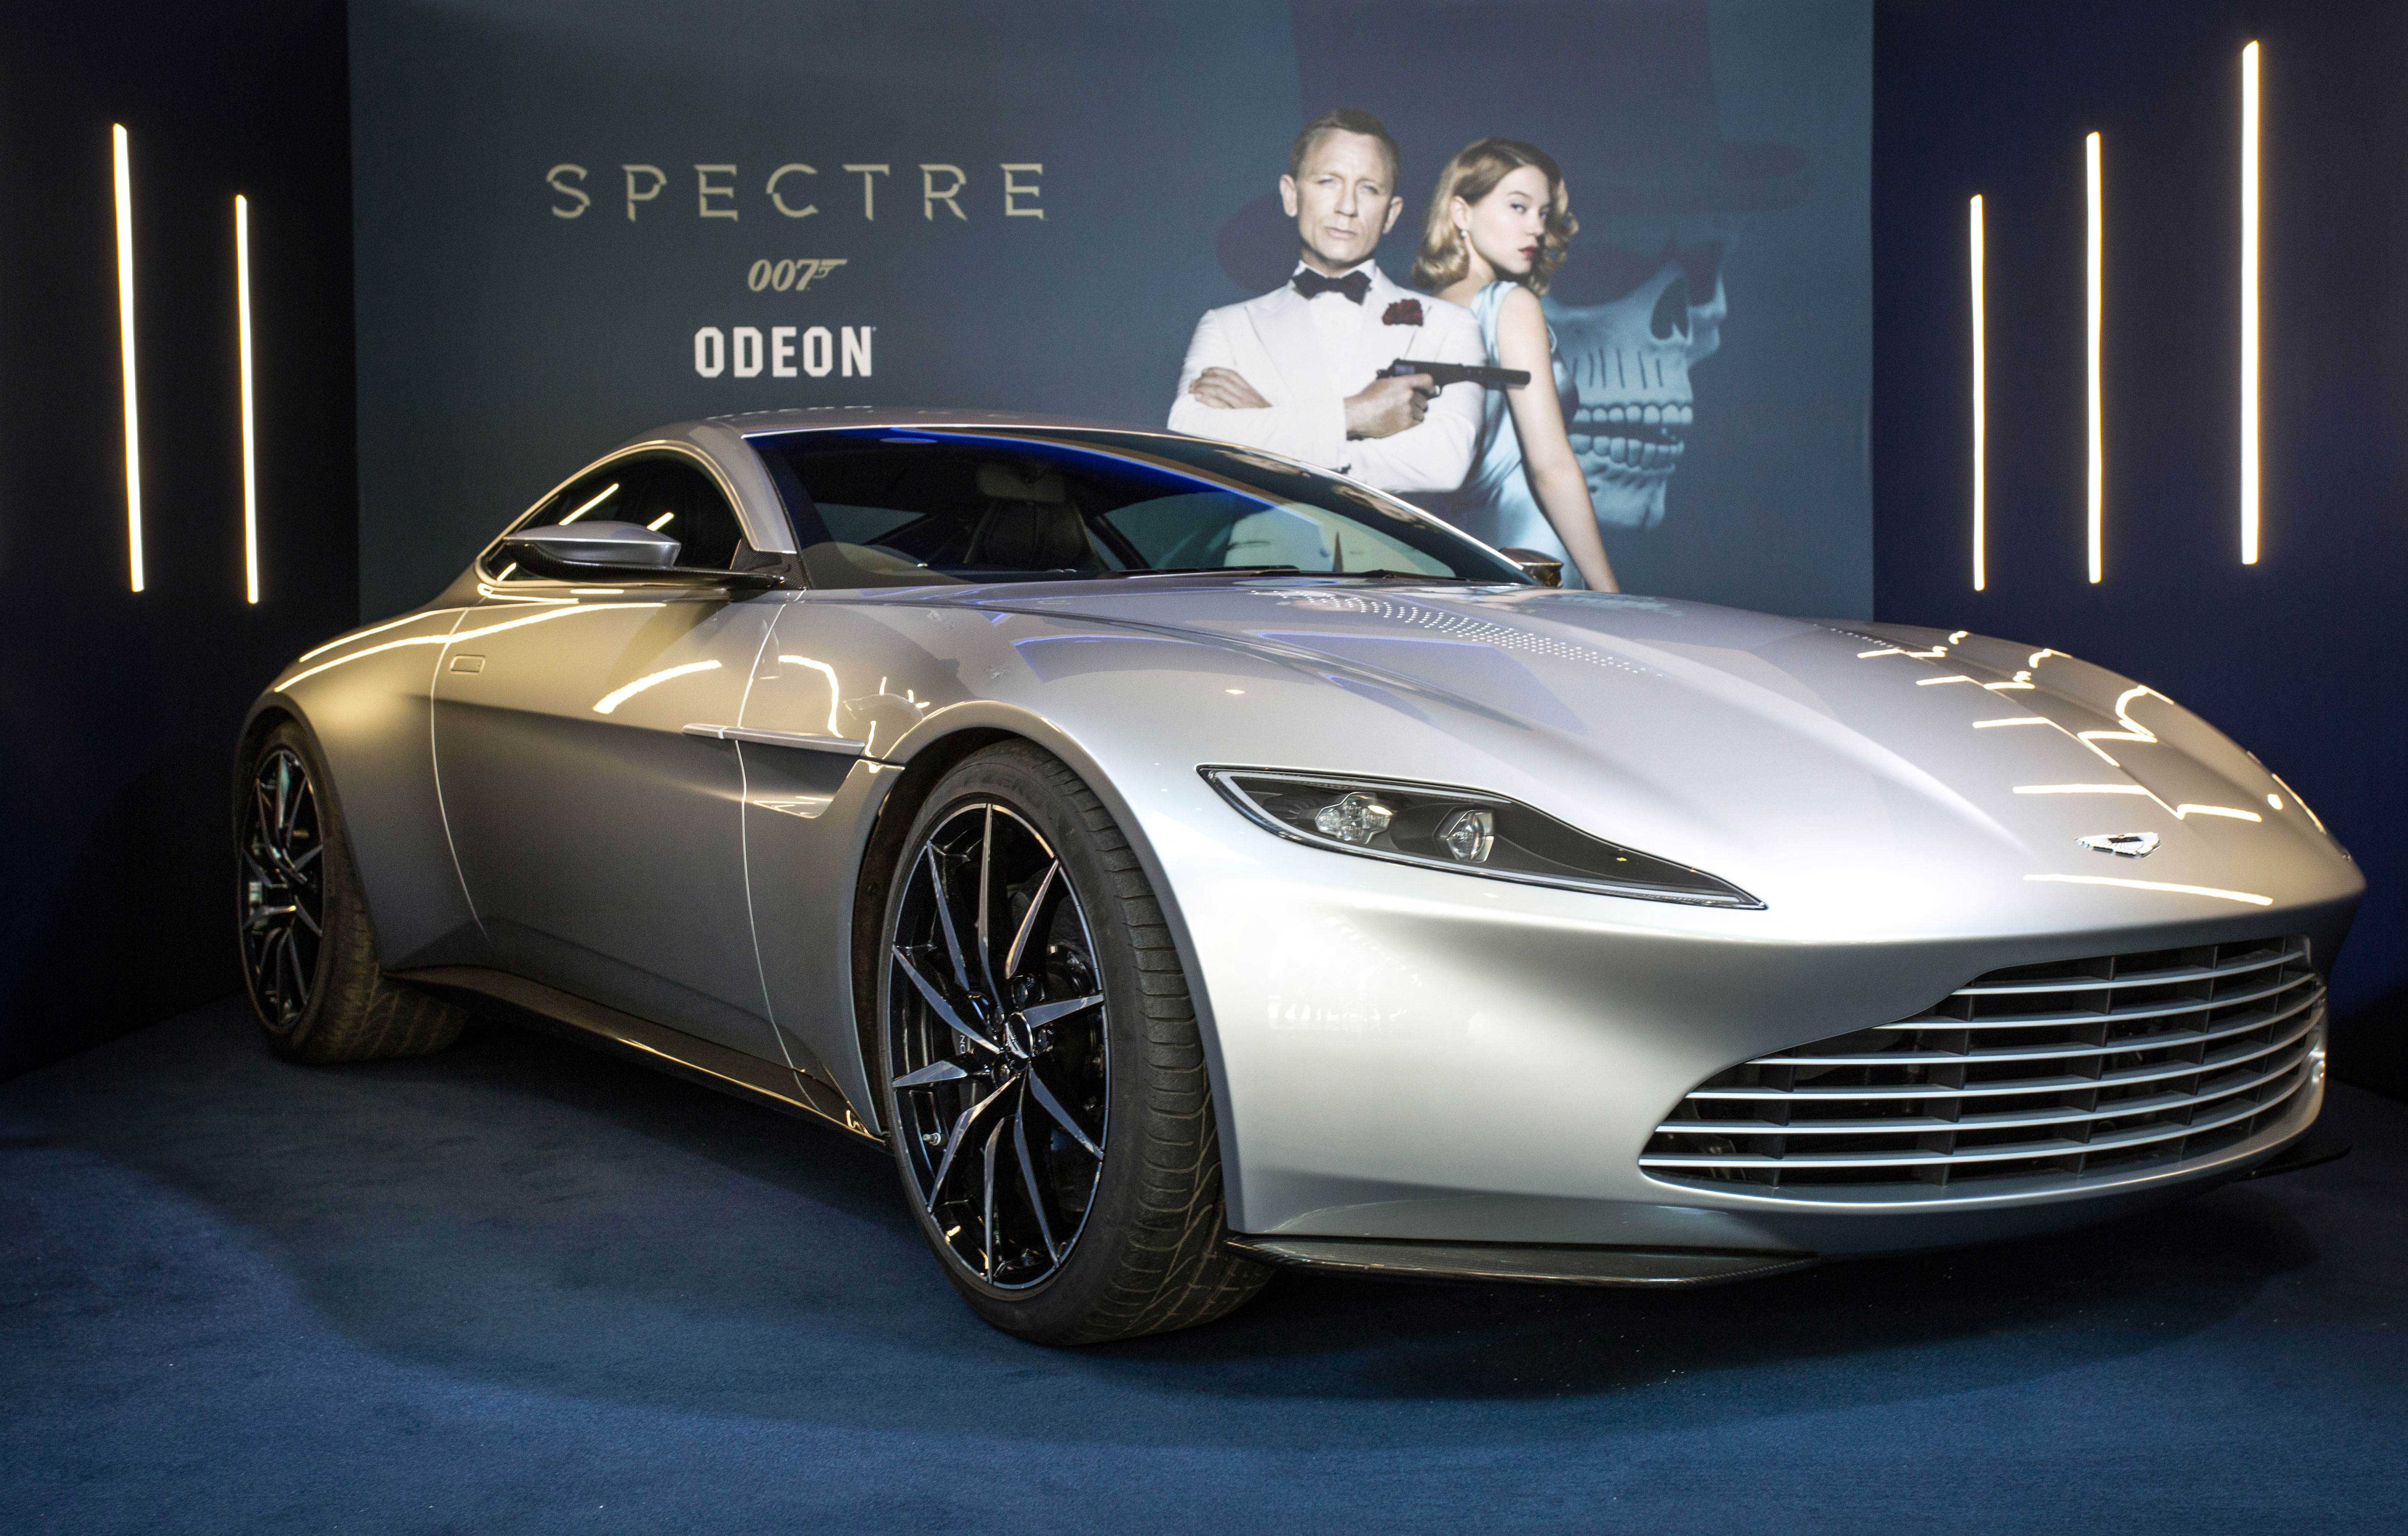 bond cars at the cars of spectre exhibition sri lanka news. Black Bedroom Furniture Sets. Home Design Ideas